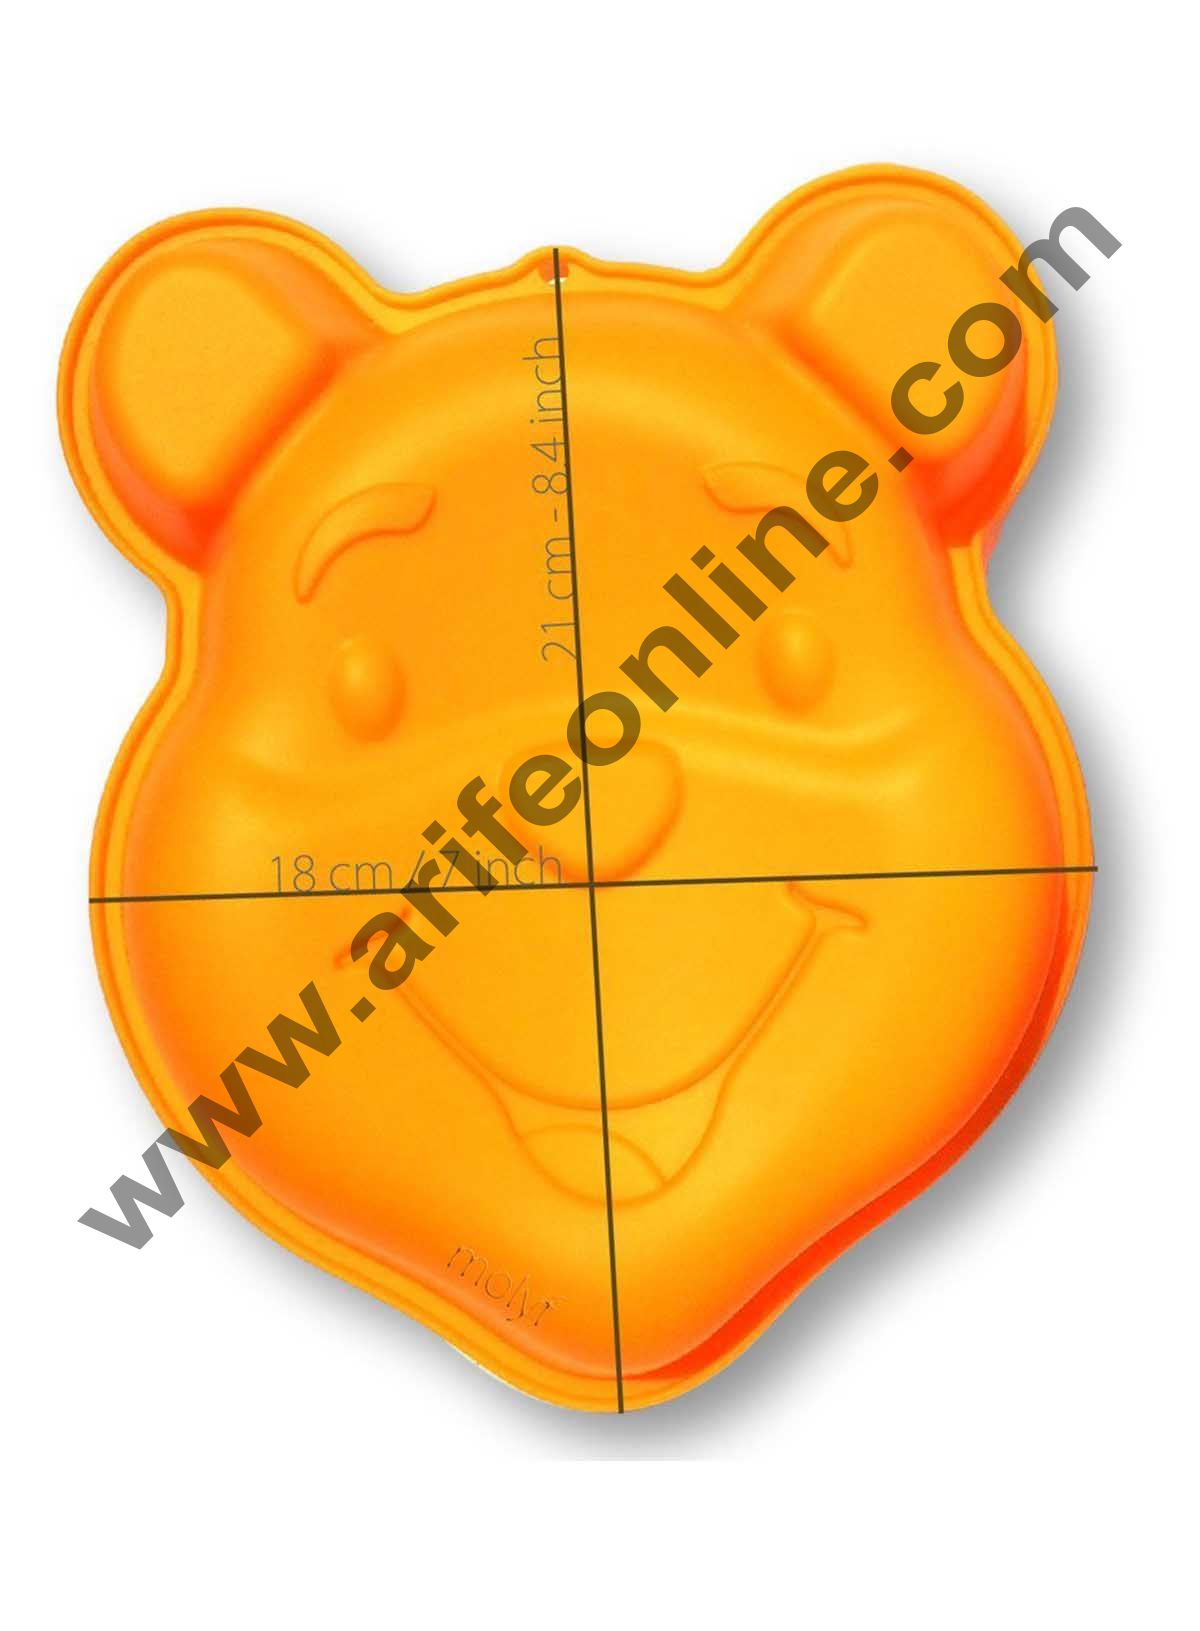 Cake Decor Silicon Bakeware Pooh Bear Shape Cake Mould